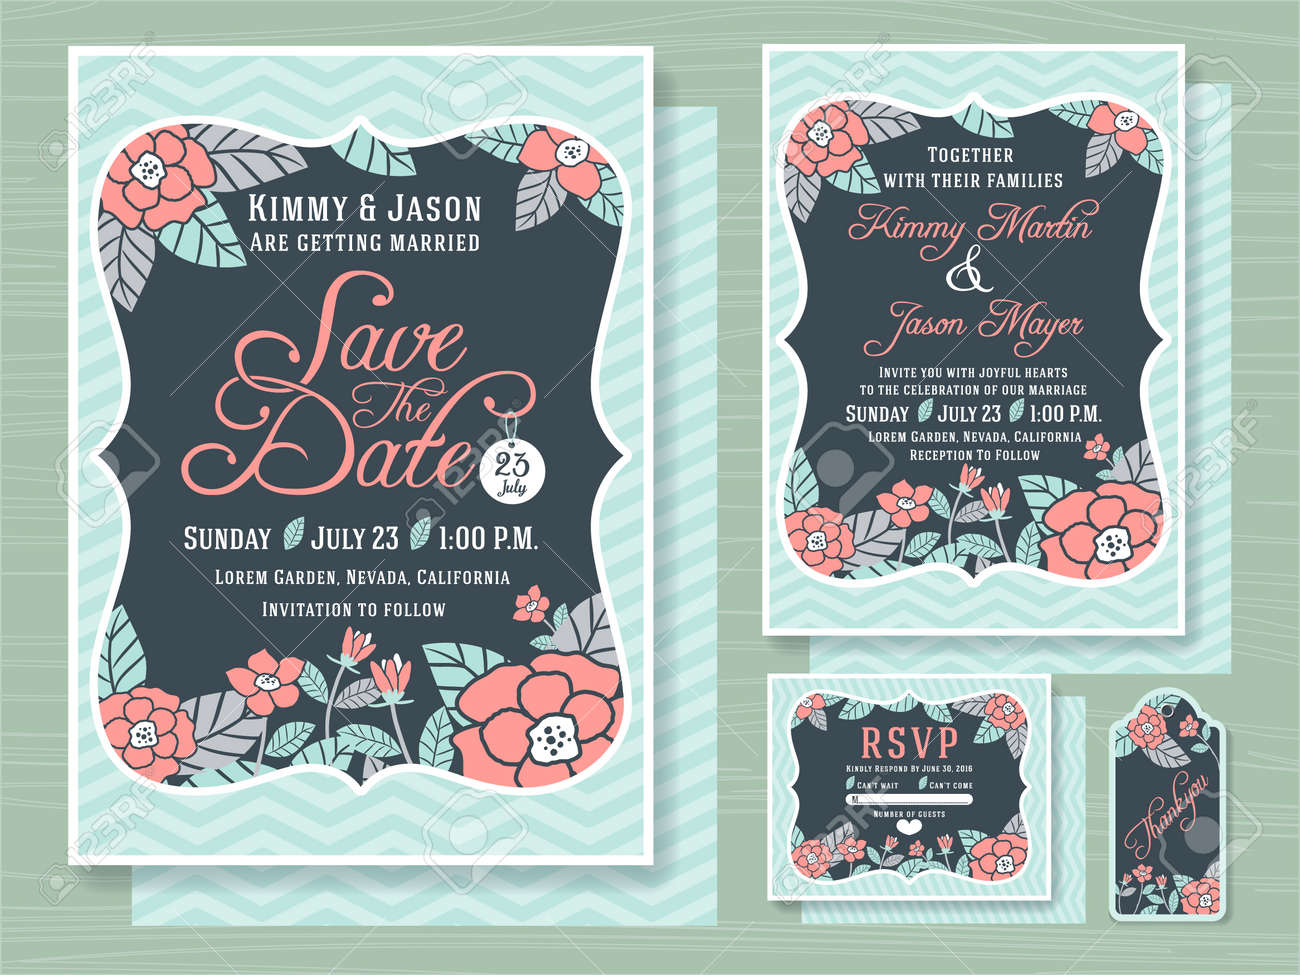 Engagement Invitation Template With Topical Flower Design In - Free 5x7 invitation template